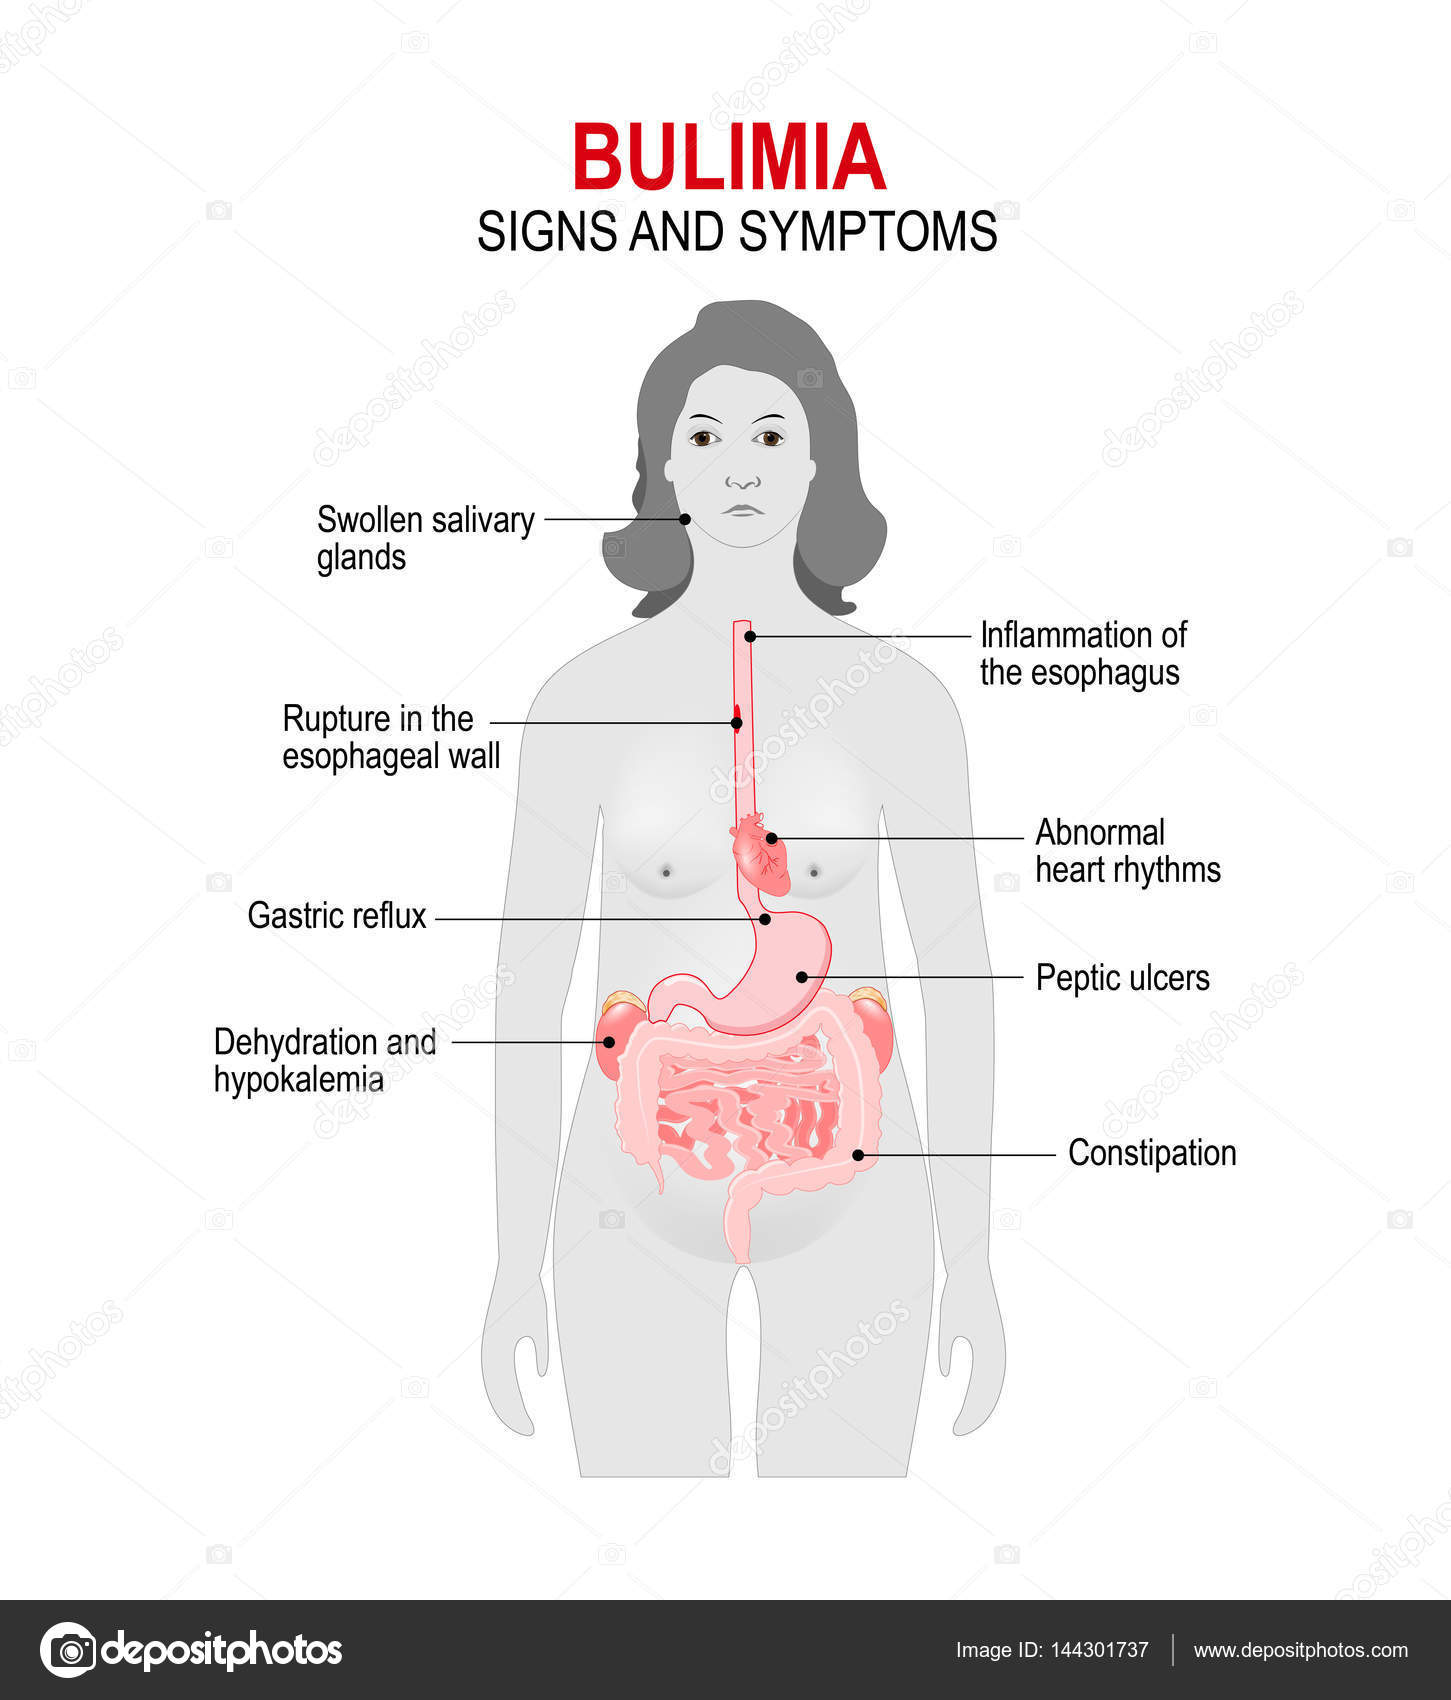 Swollen salivary glands bulimia